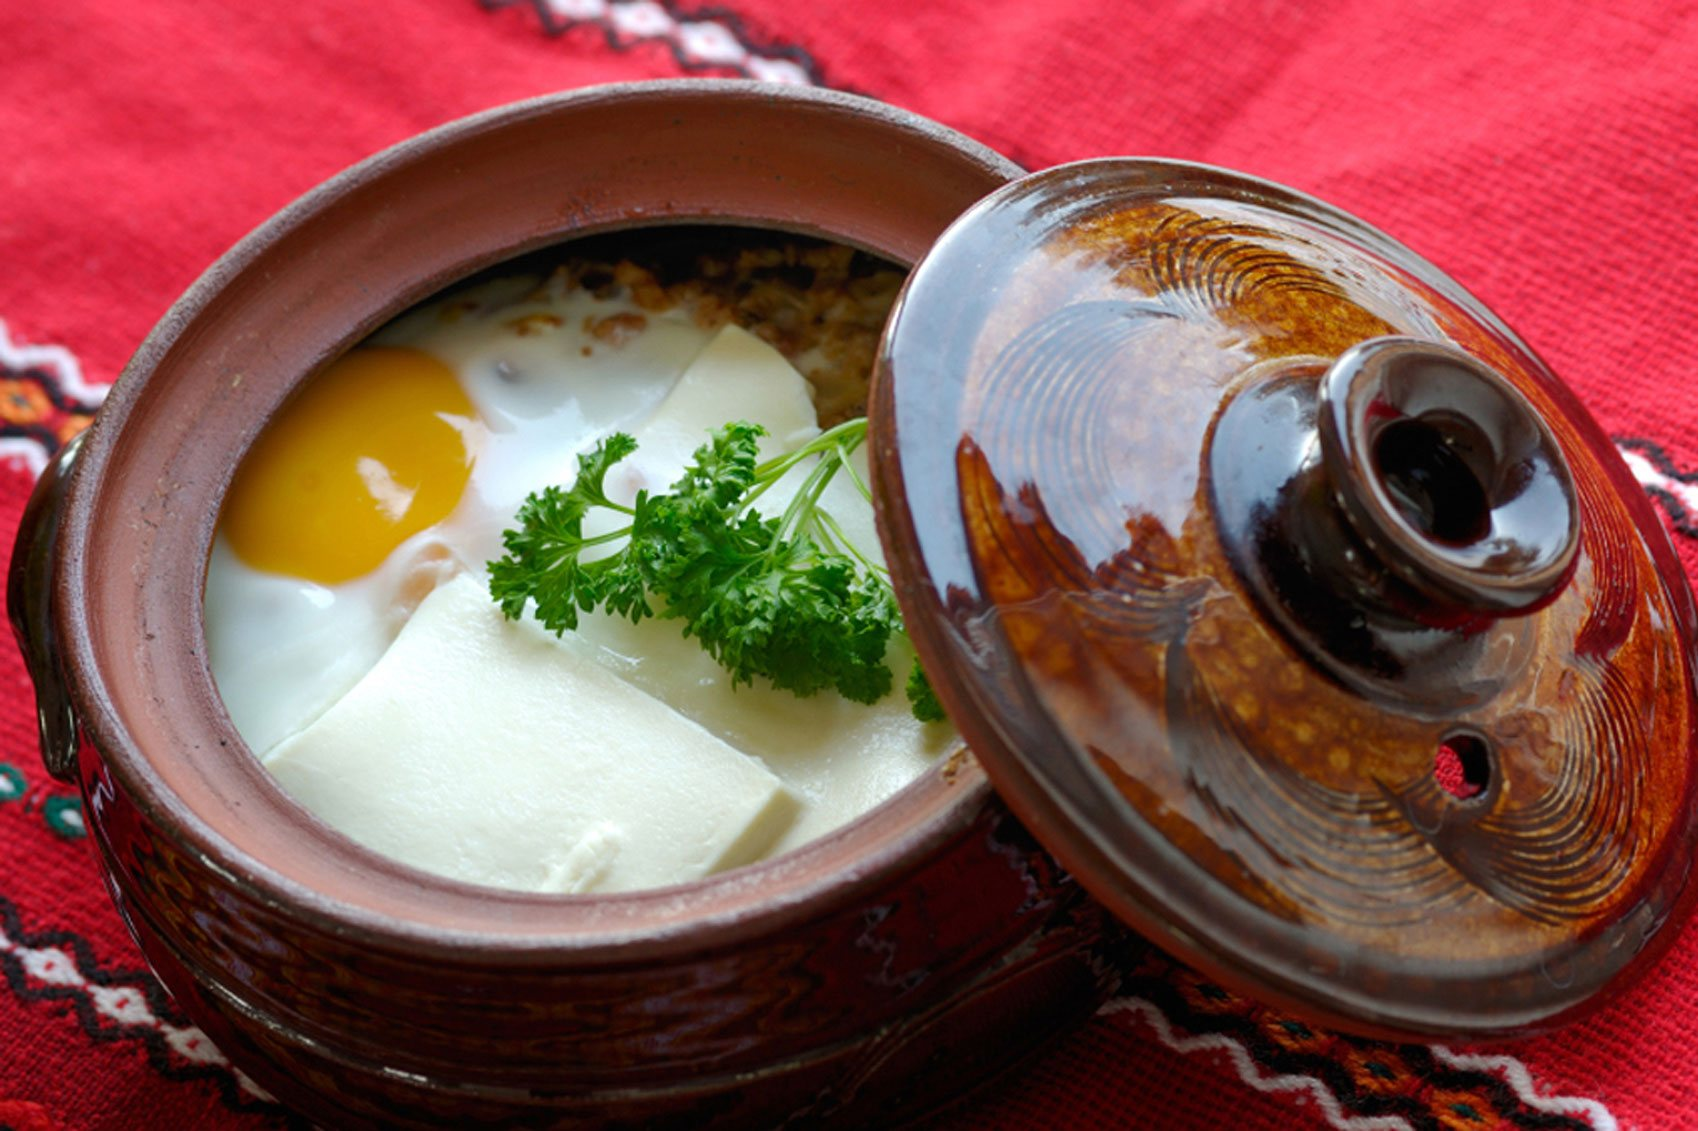 Bulgarian food - gyuvetche